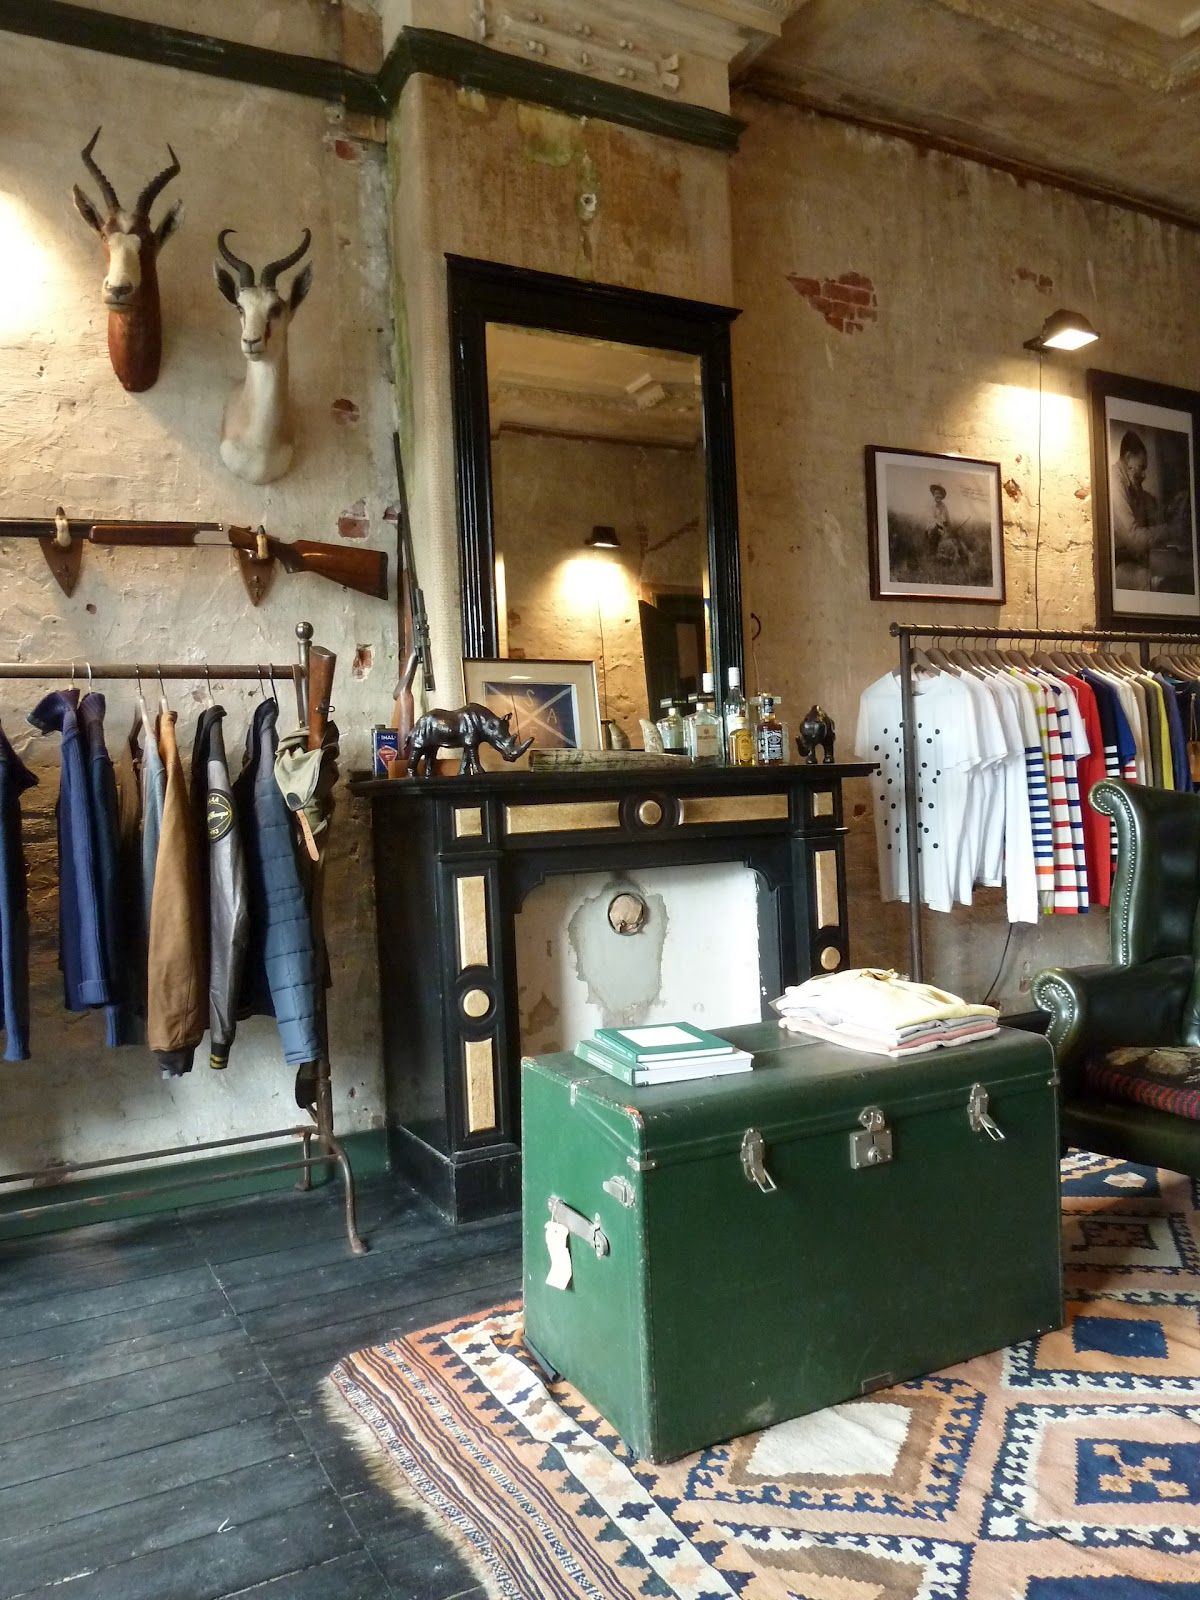 Great Store Layout - Love Taxidermy With